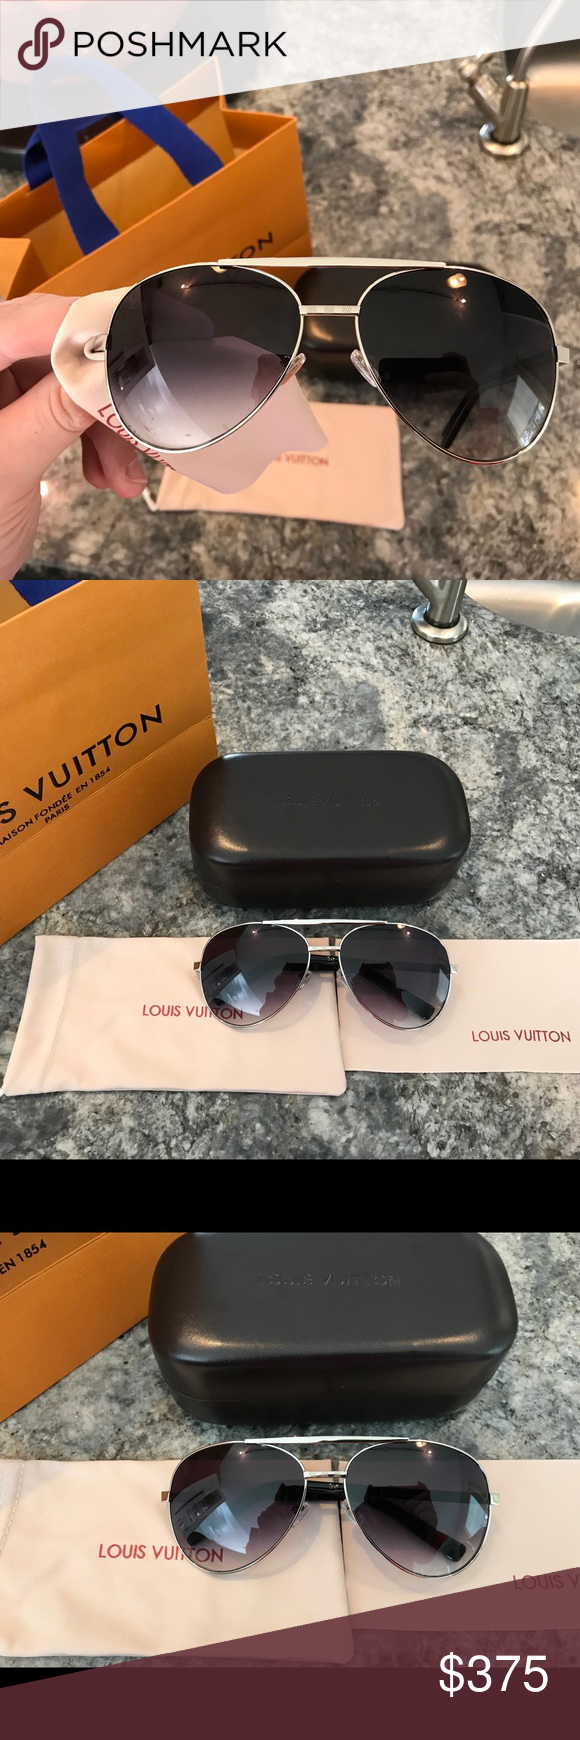 21e911569325 🔥Louis Vuitton Attitude Pilot Sunglasses🔥 Make these a perfect Christmas  present for a loved